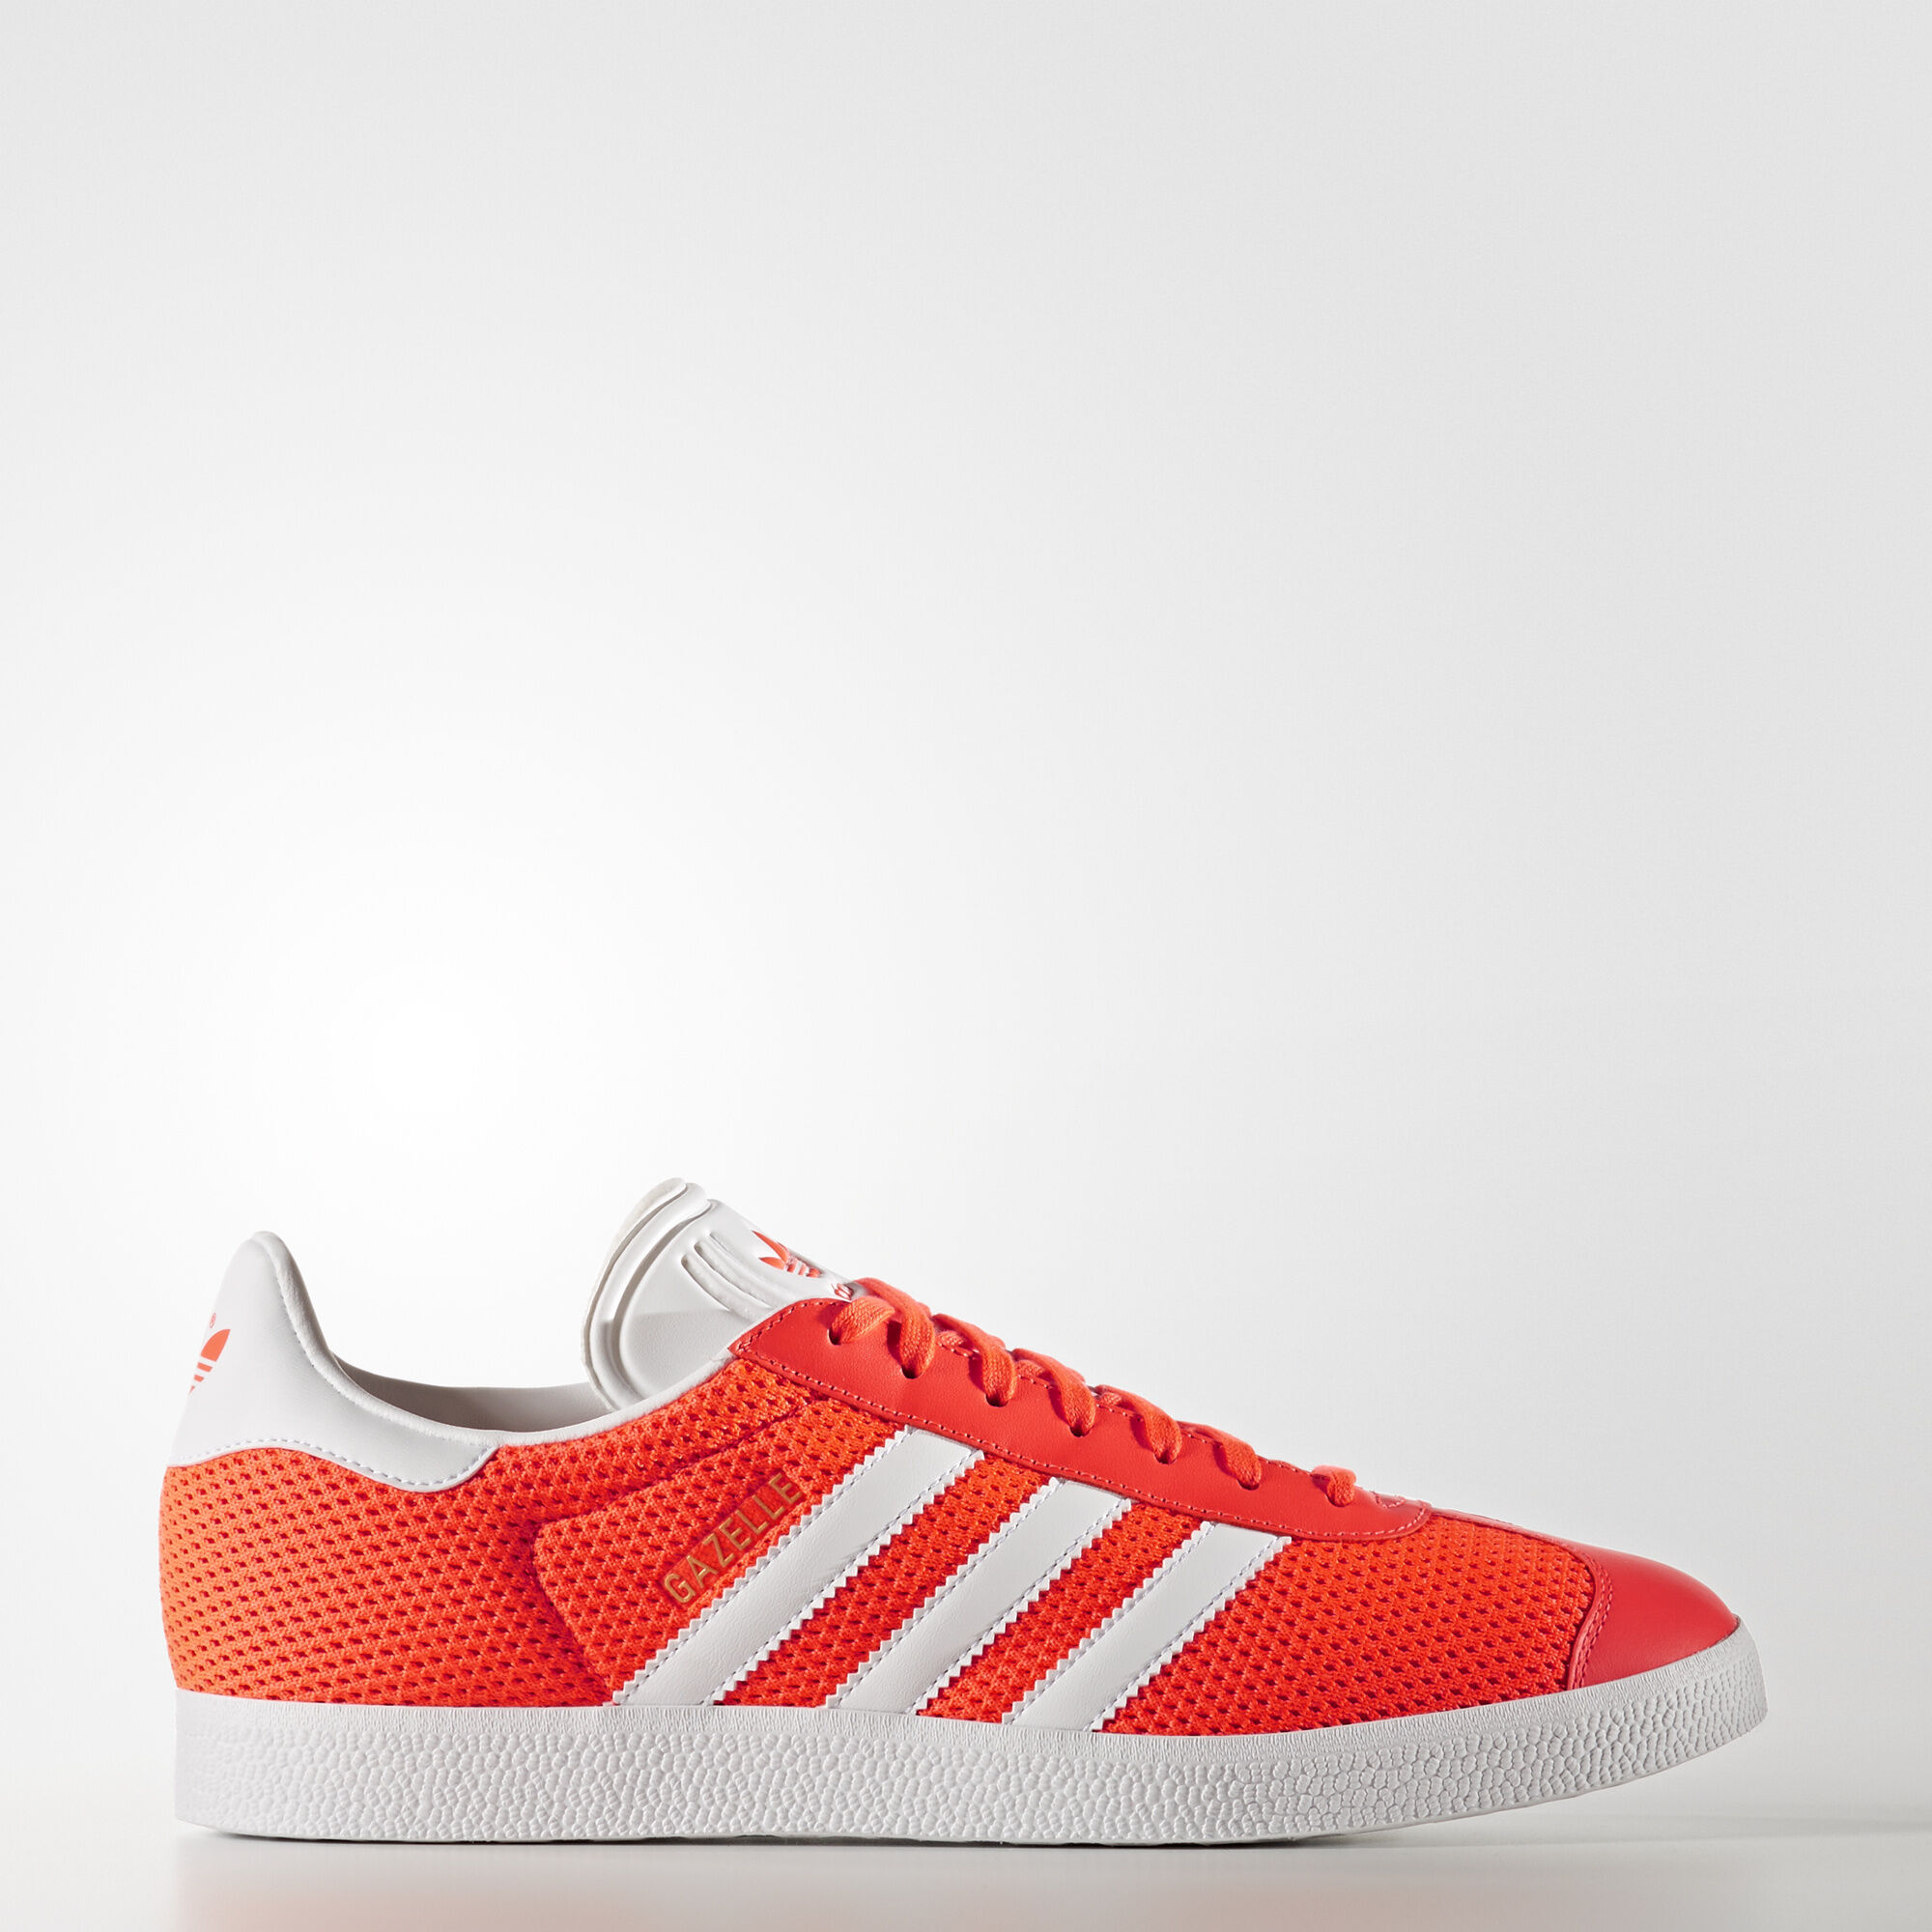 best website fe81a e0dec clearance adidas neo canvas naranja púrpura fb140 618ea